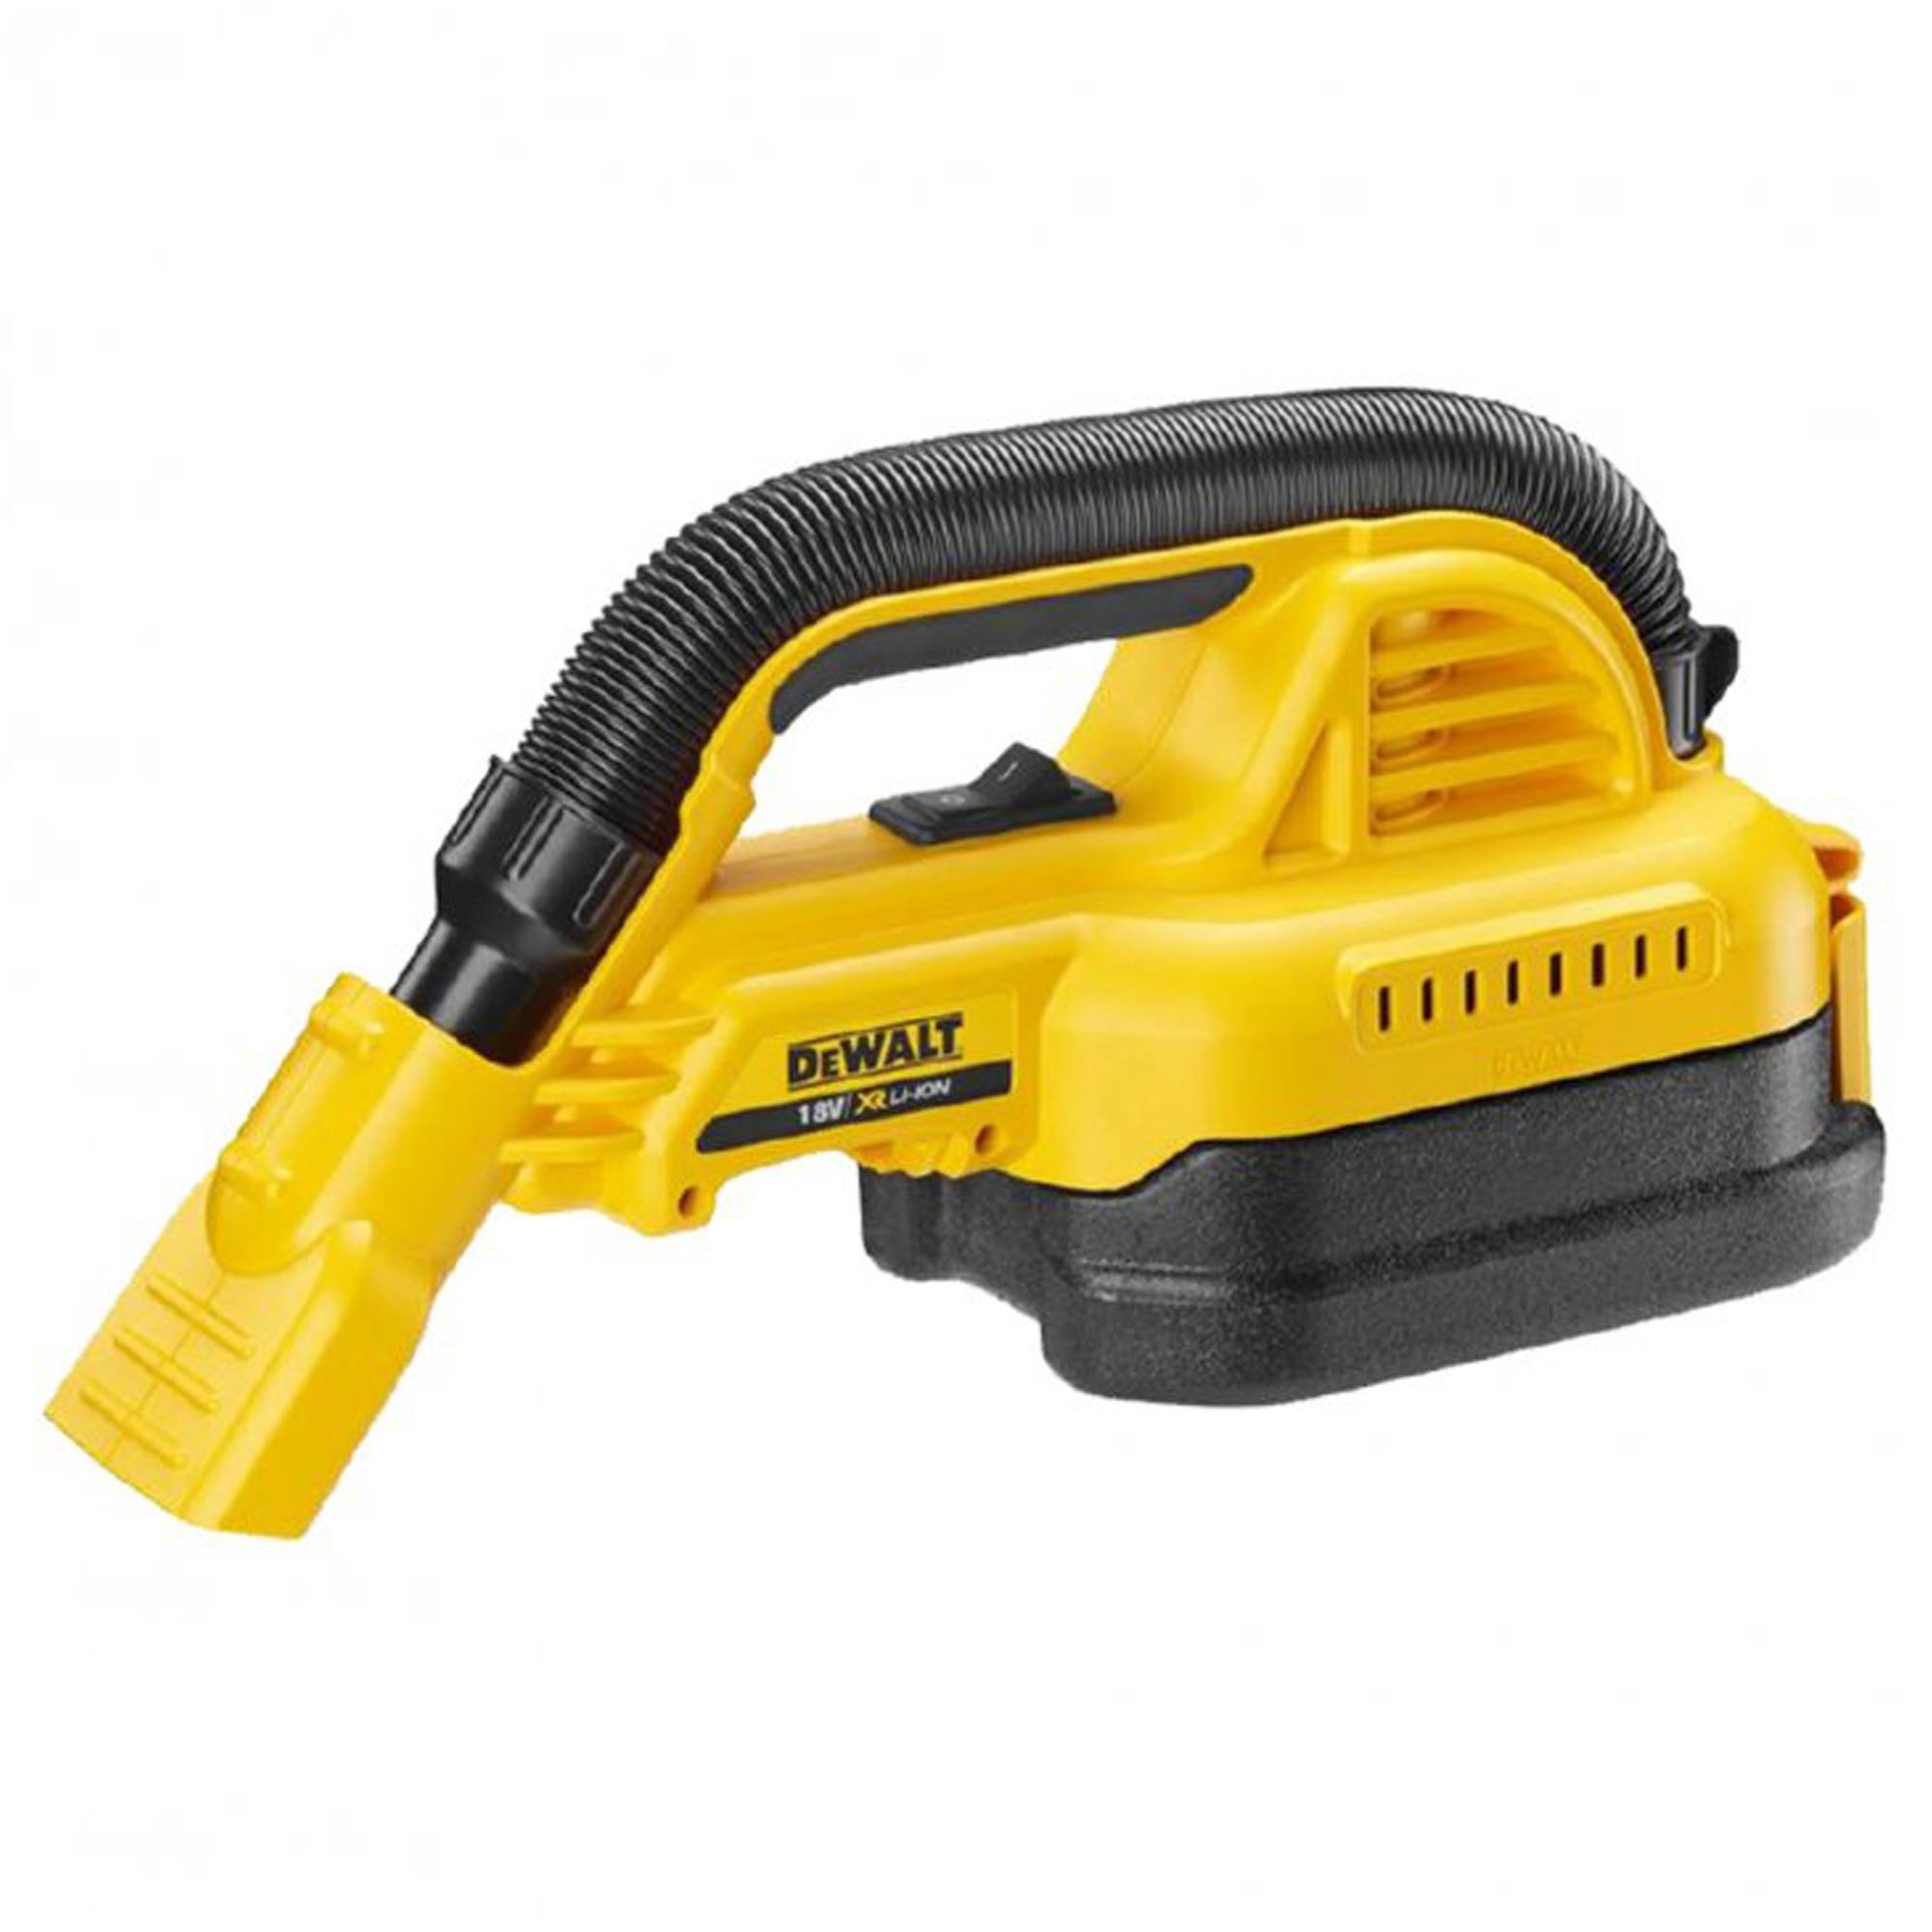 Hand Held Vacuum Cleaners